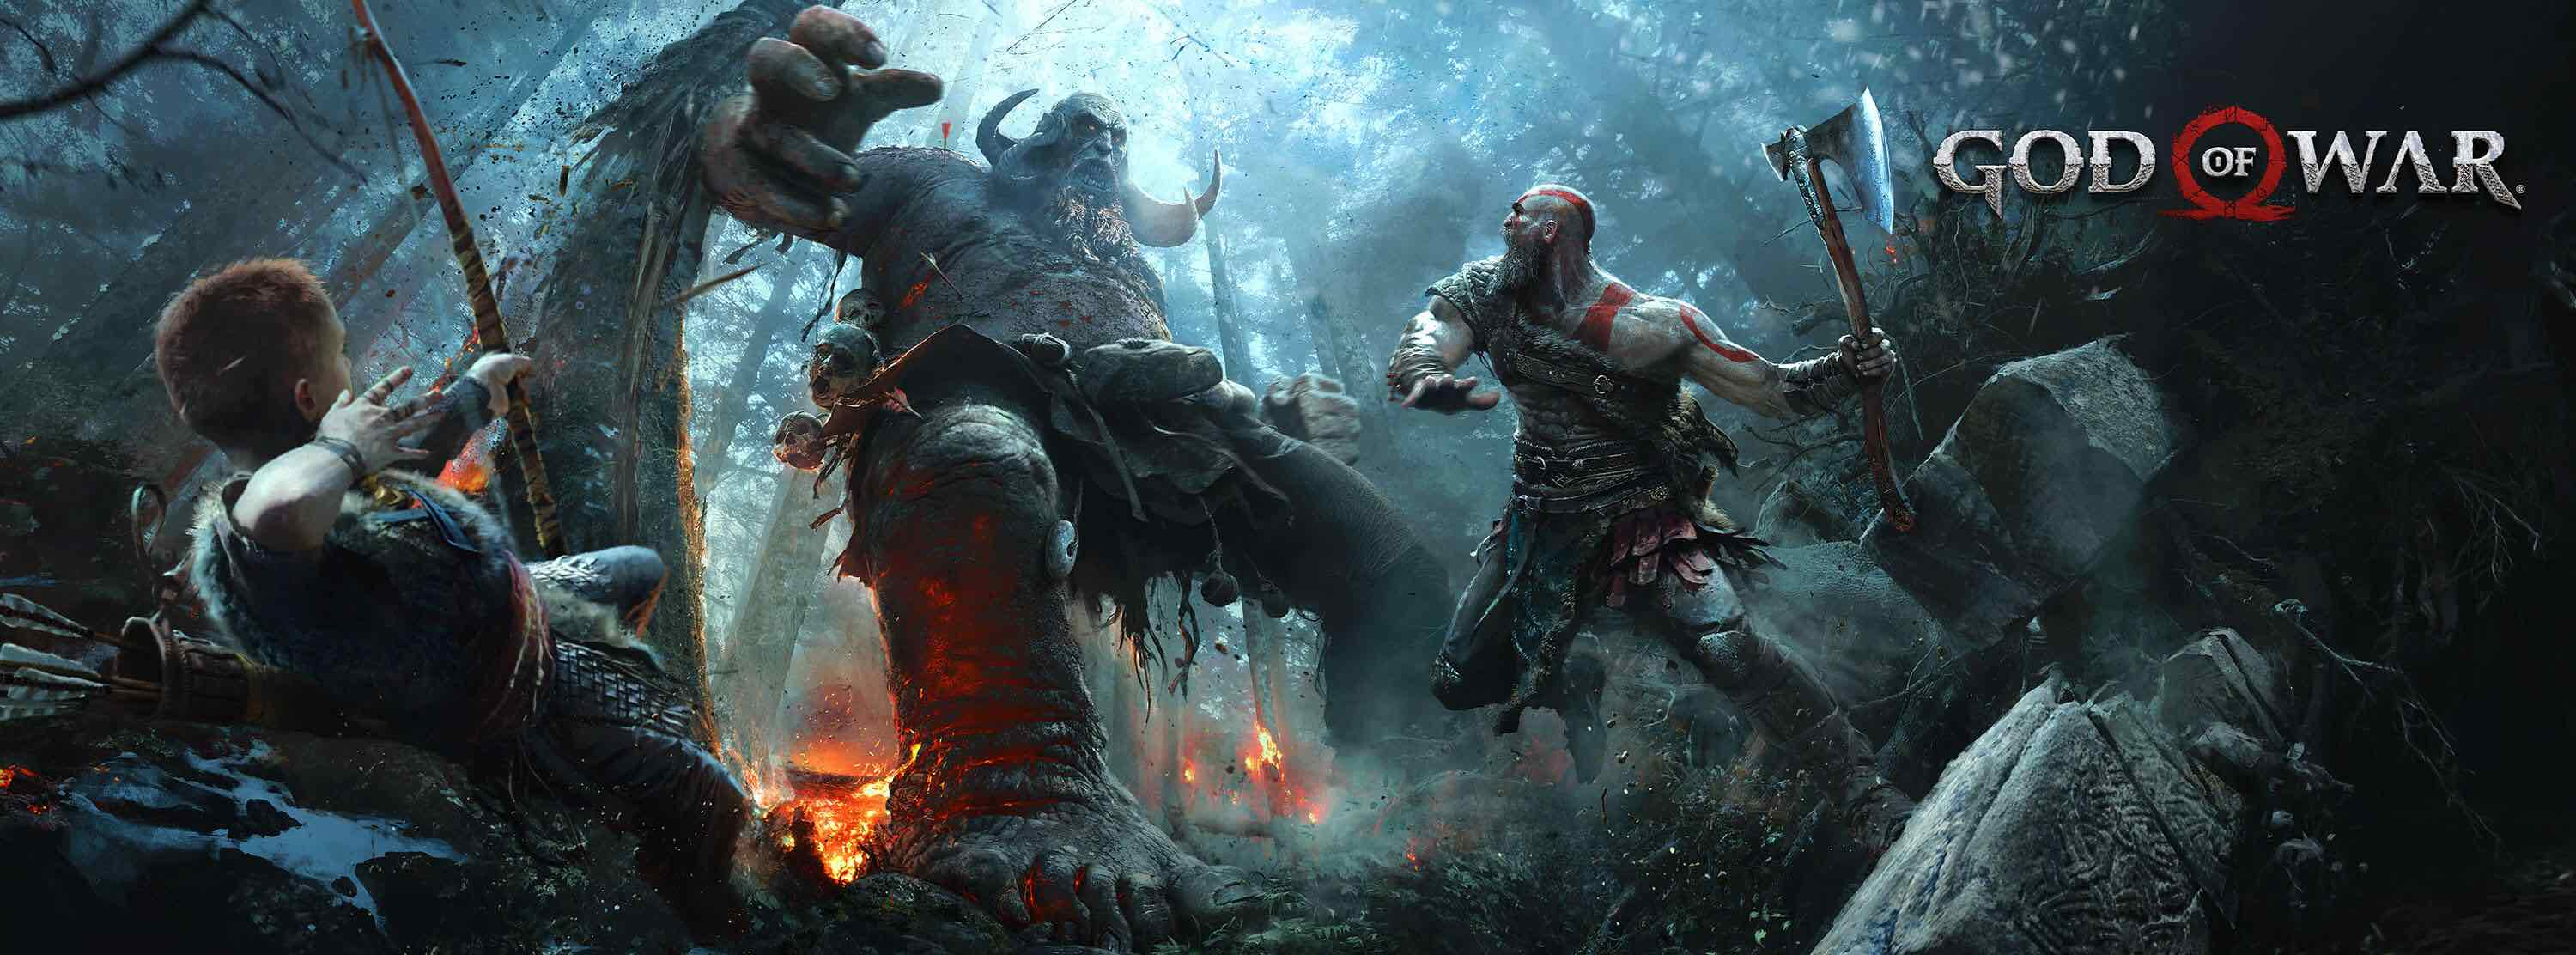 storia del videogioco God of War